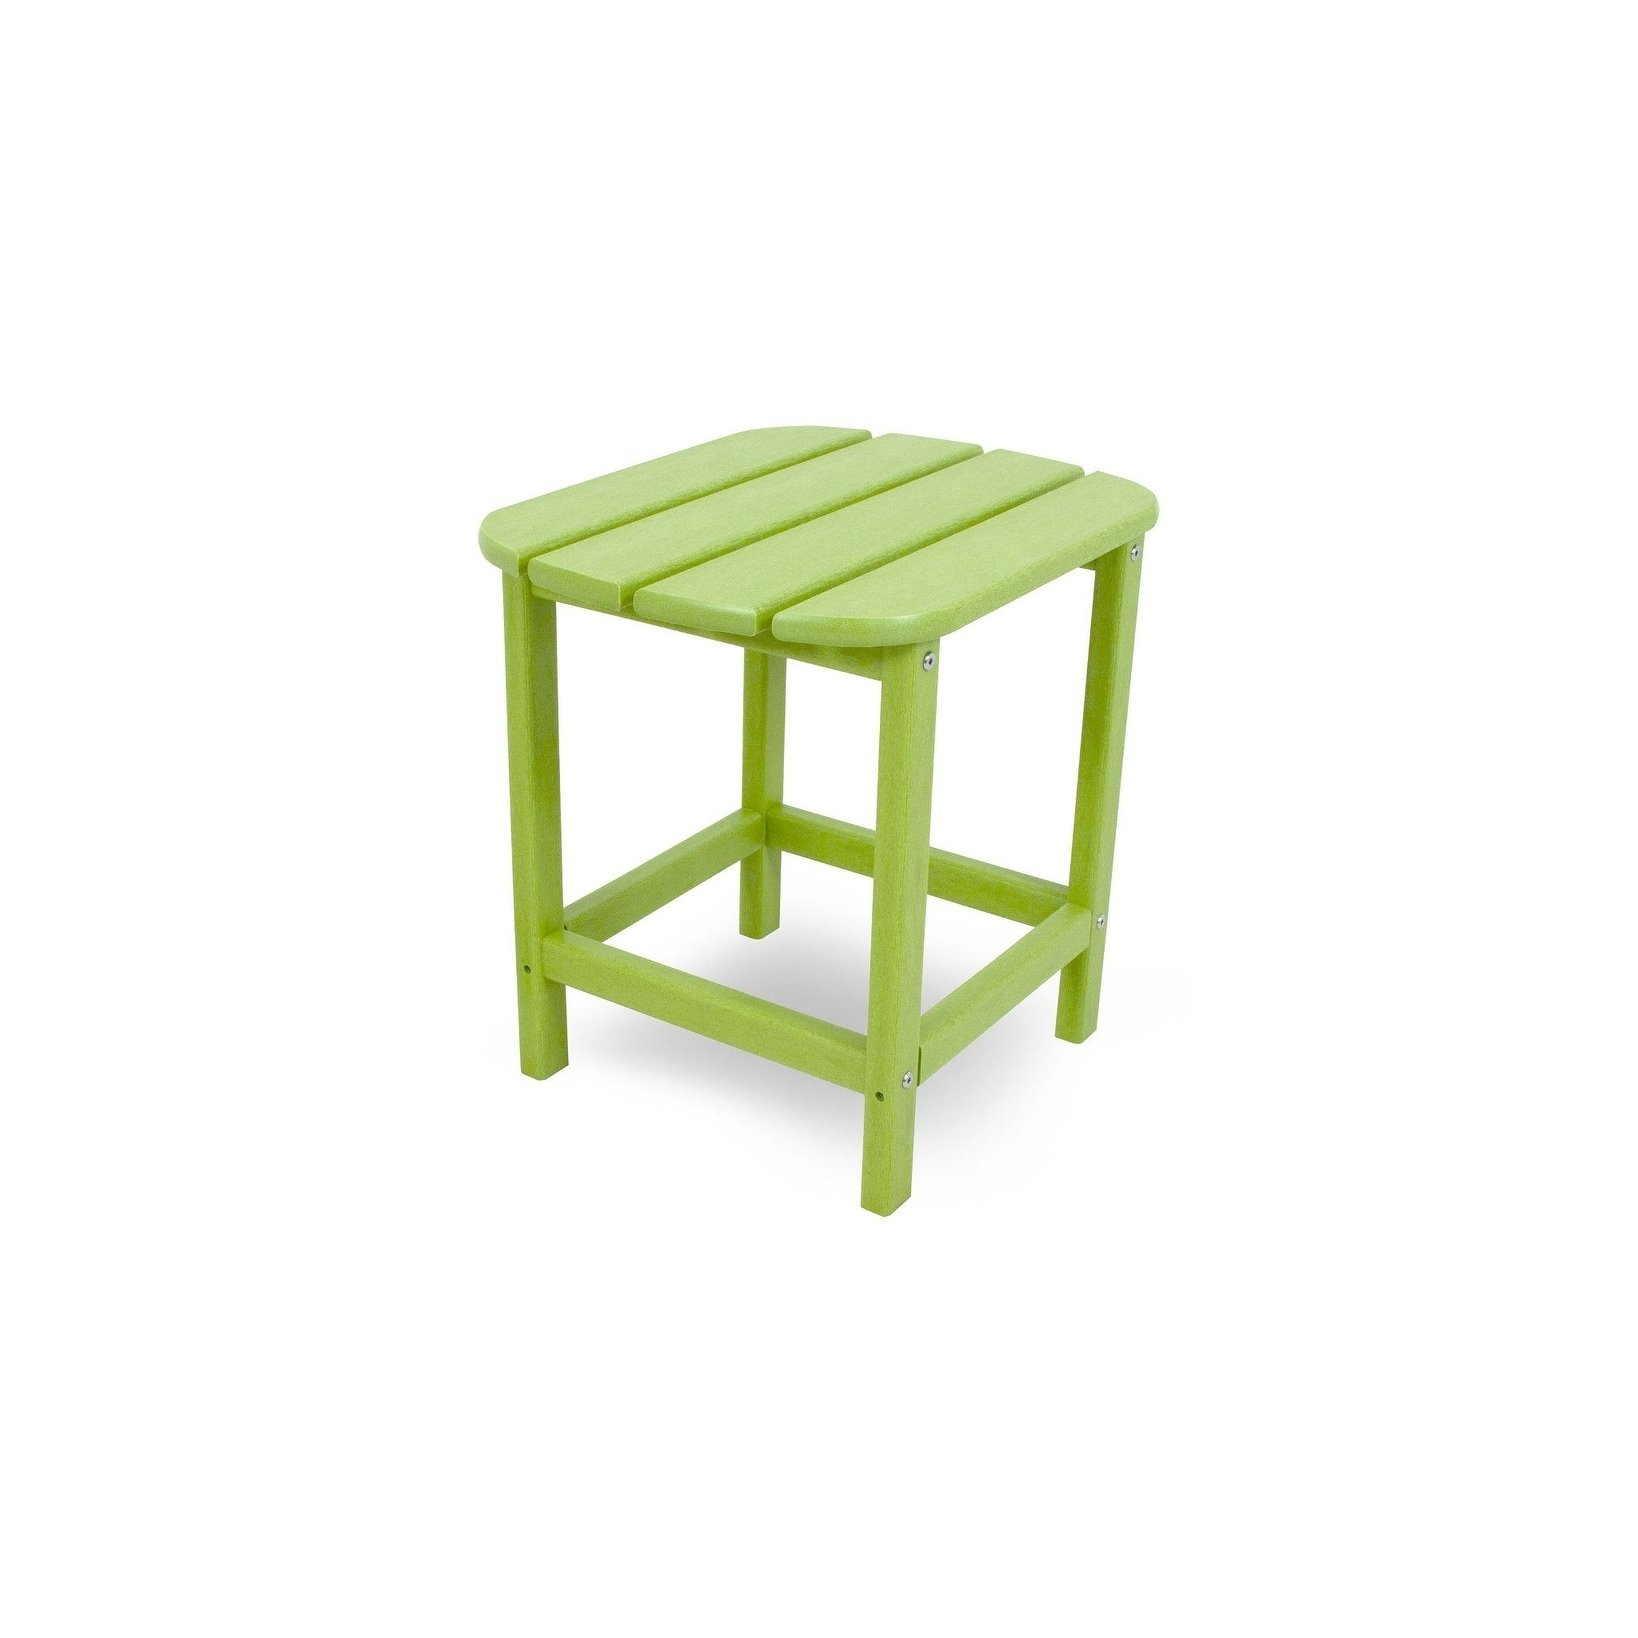 polywood south beach inch outdoor side table free shipping green today coffee plastic garden white counter height living room sofa blue chairs backyard cooler antique end tables